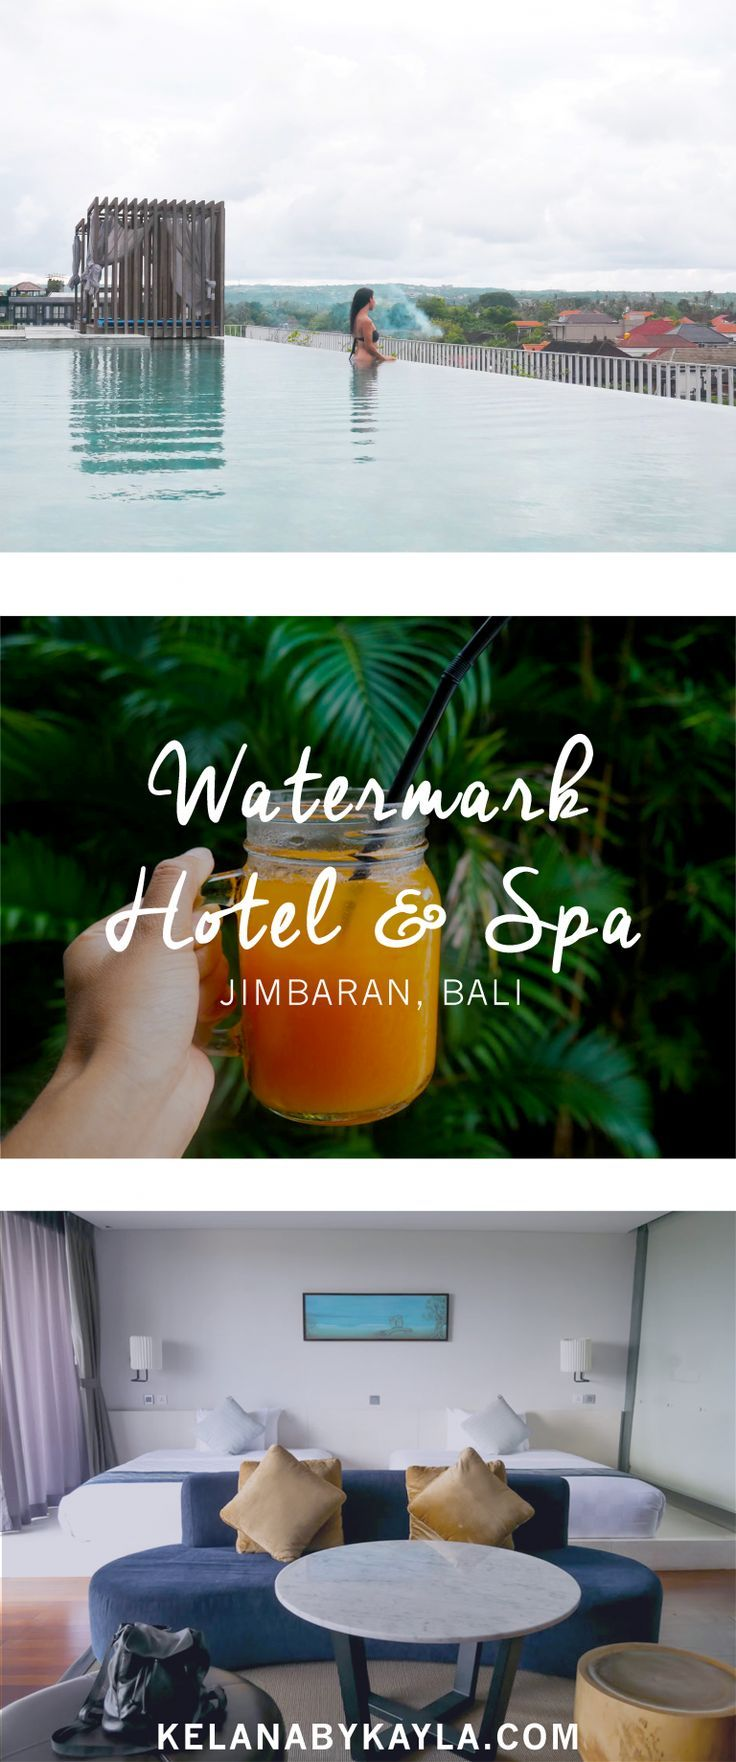 Watermark Hotel & Spa Bali is a 4-star hotel located just a few minutes walk from Jimbaran beach. Read on for our review.